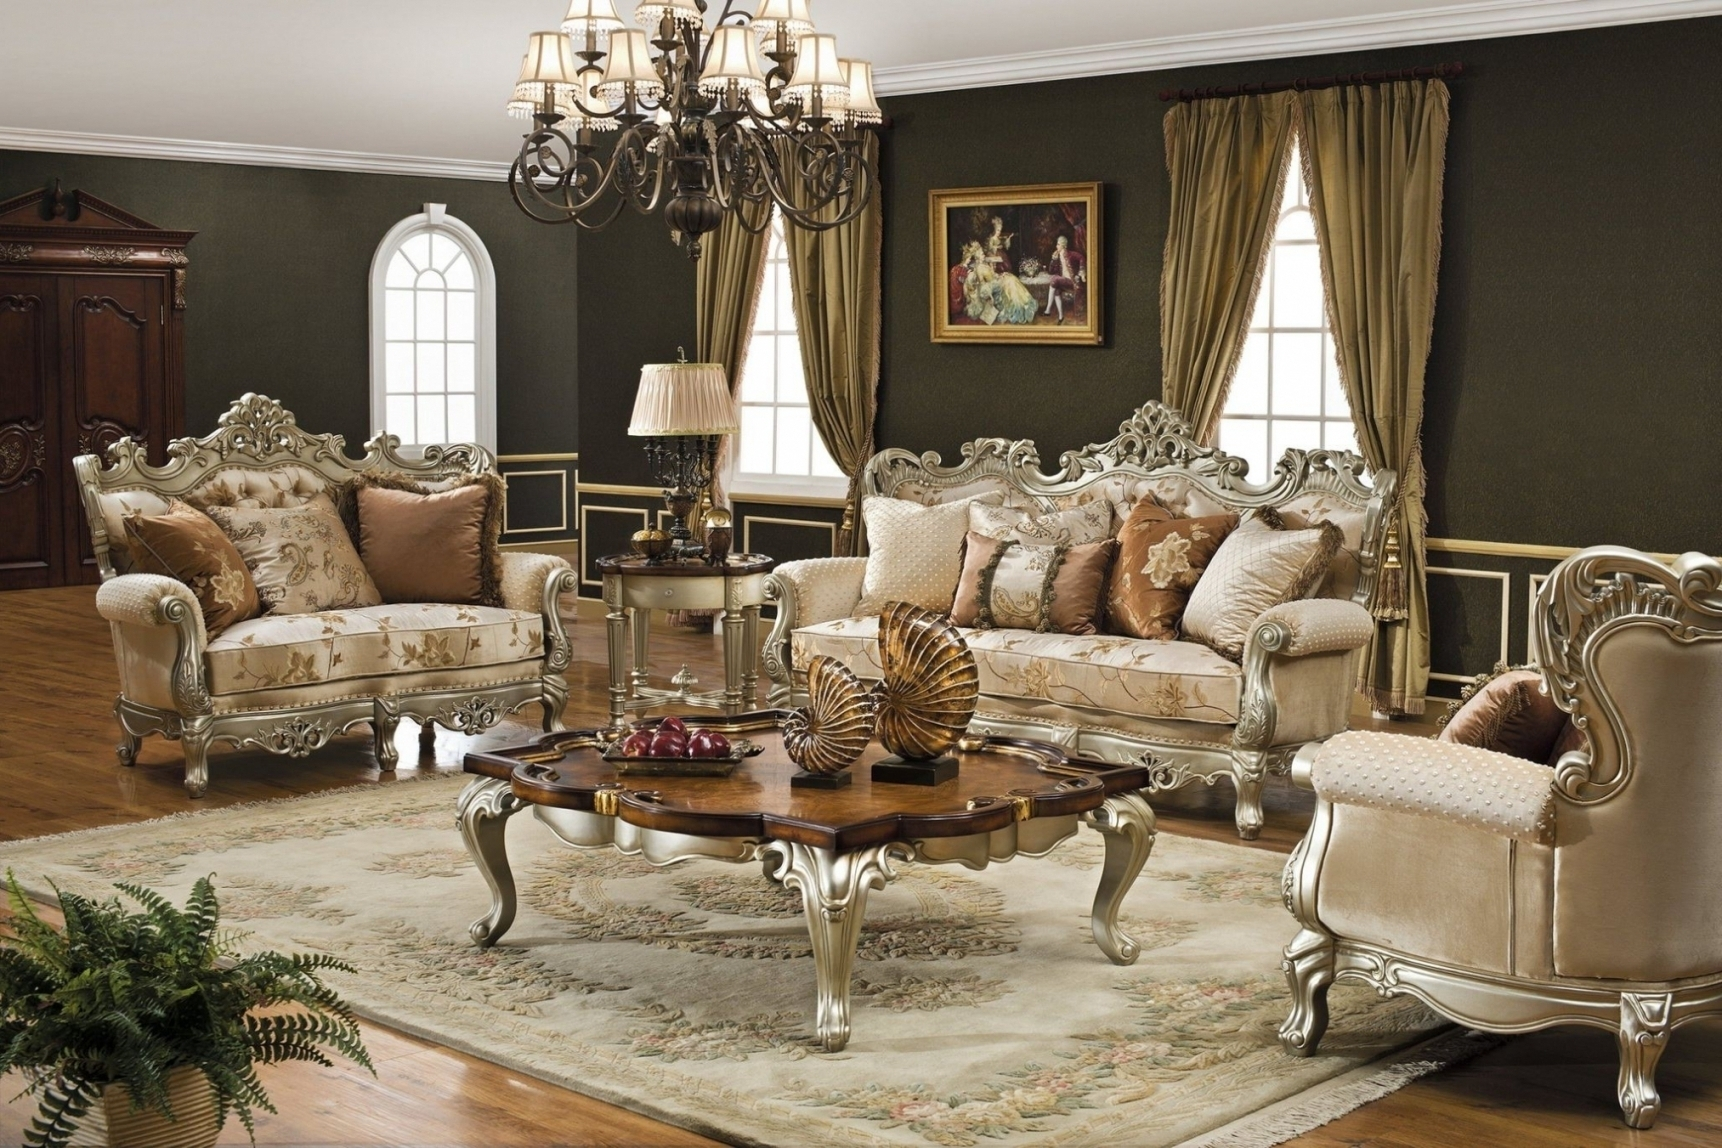 Fancy Sofas Regarding 2019 Amusing Living Room Furniture Sets Sofas Couches Fancy (View 11 of 20)